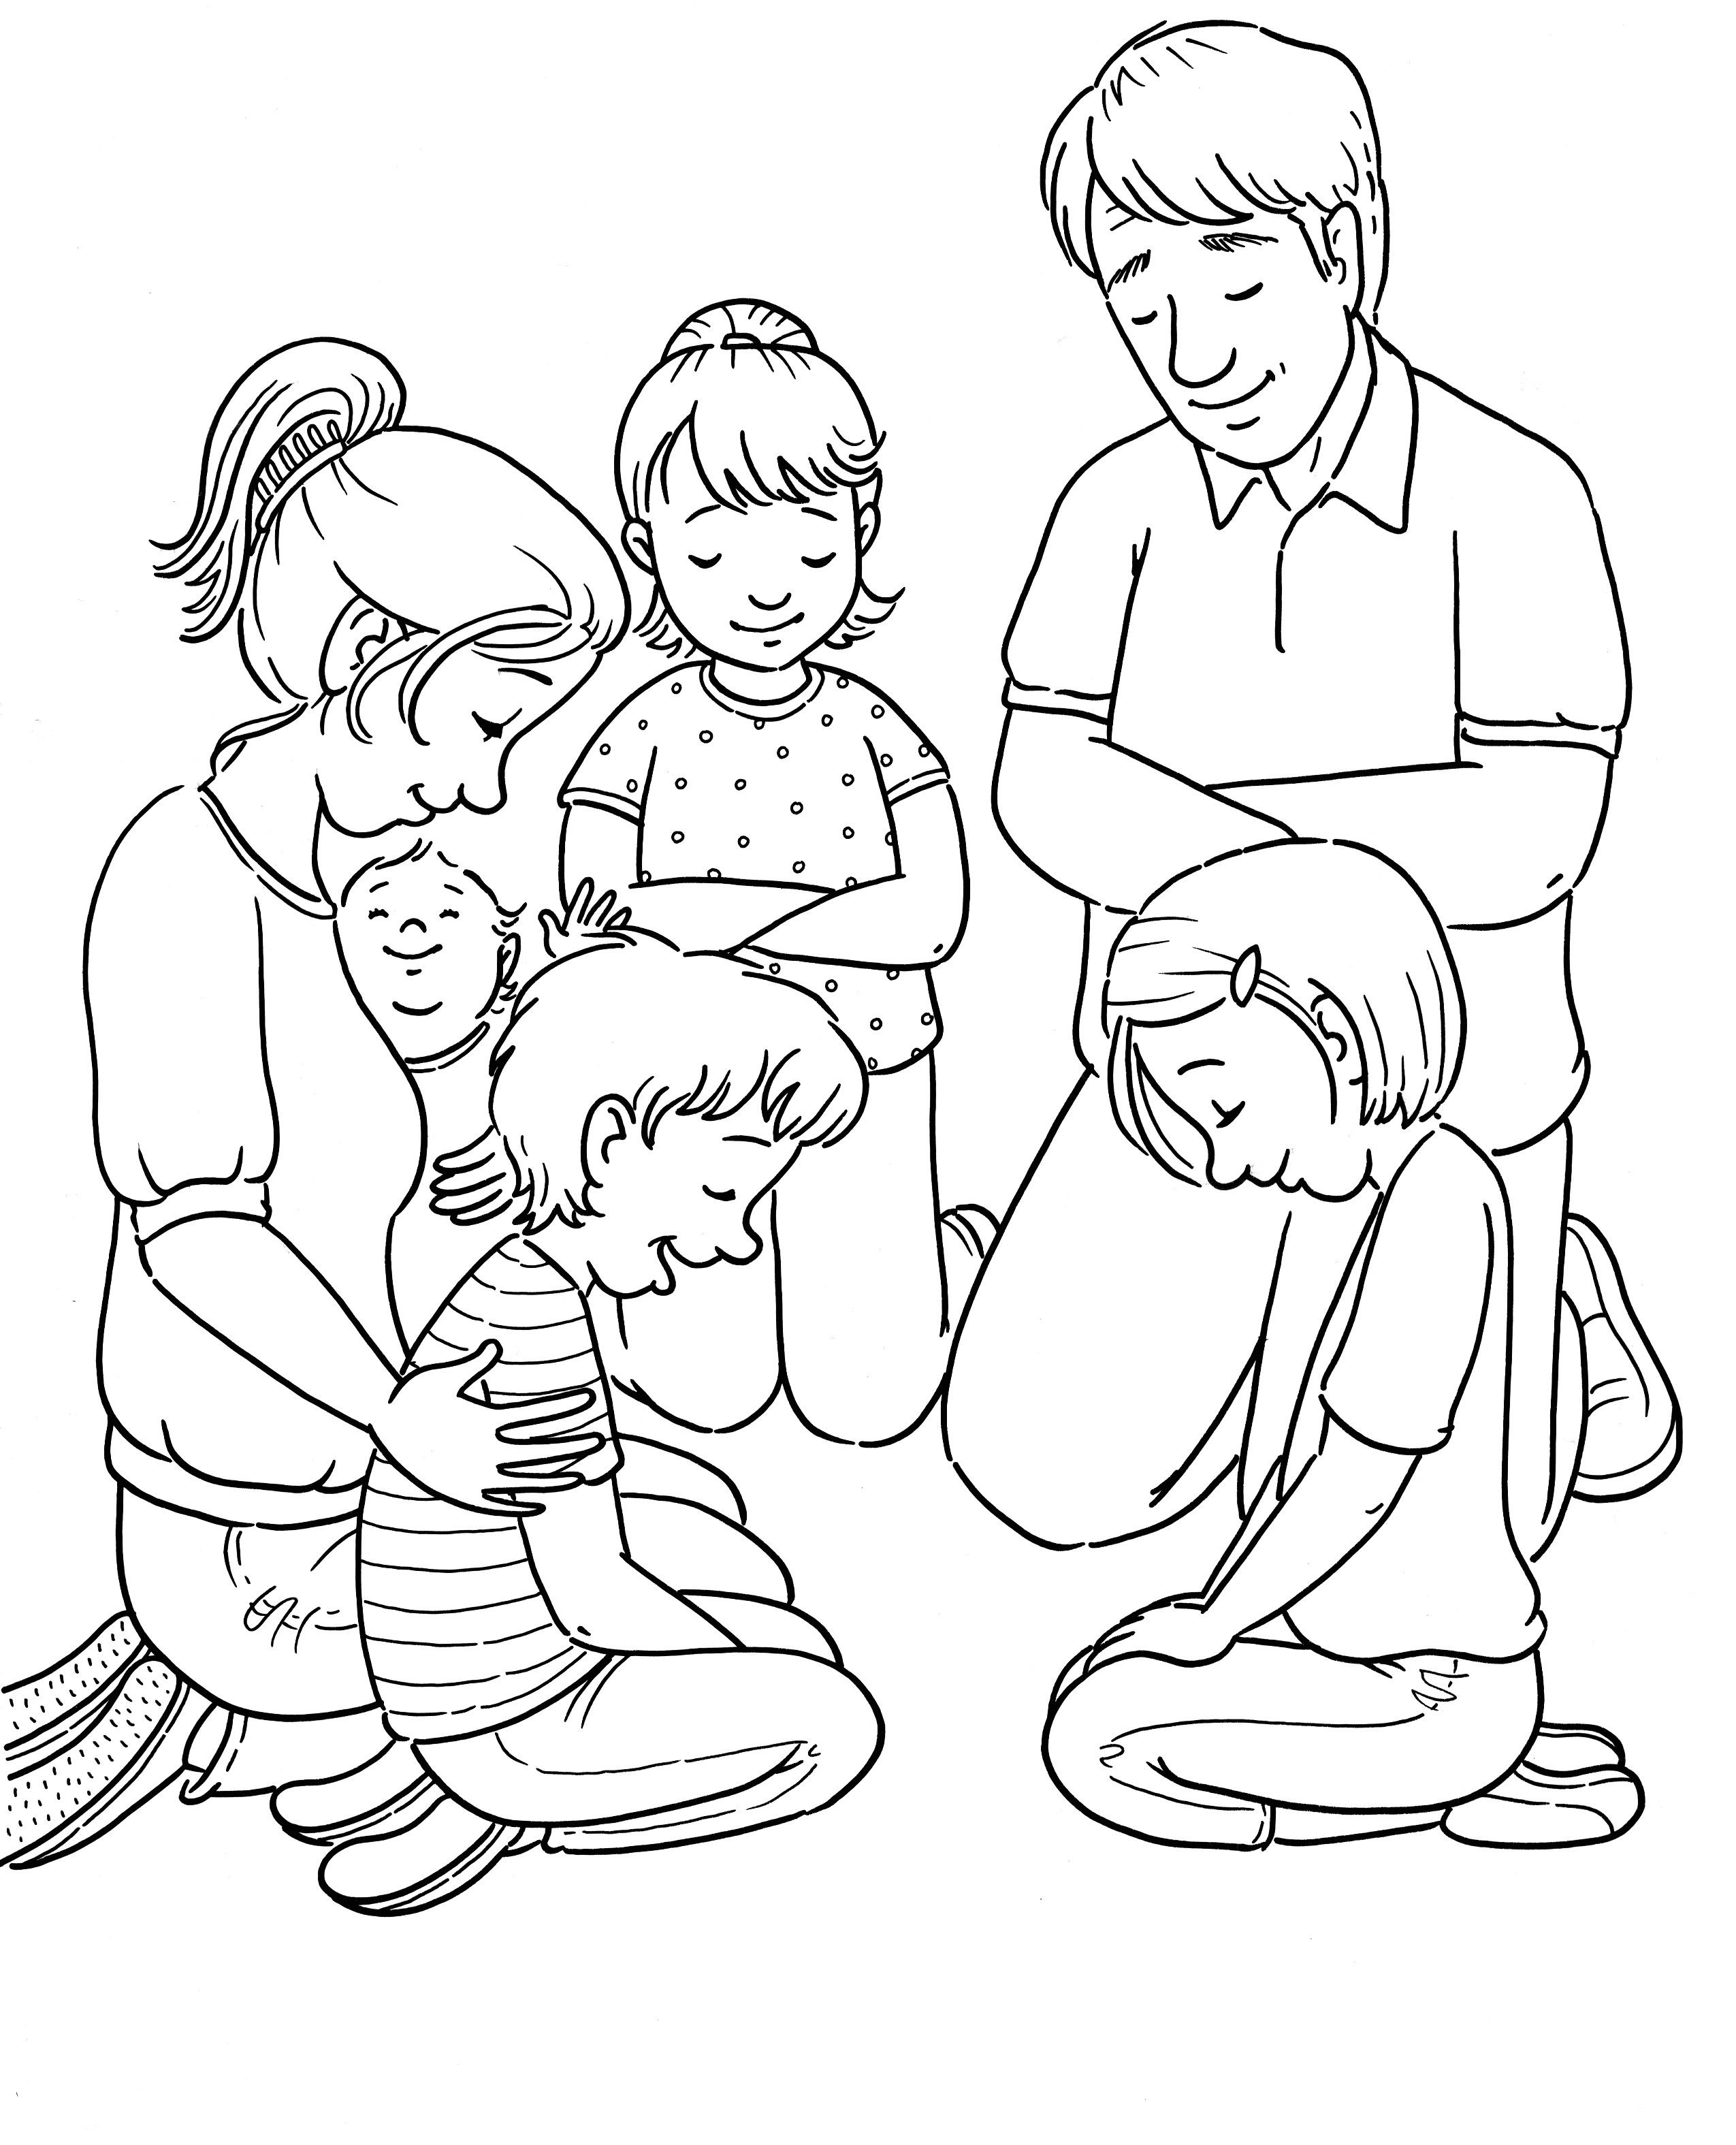 A family kneels in a circle and prays together.